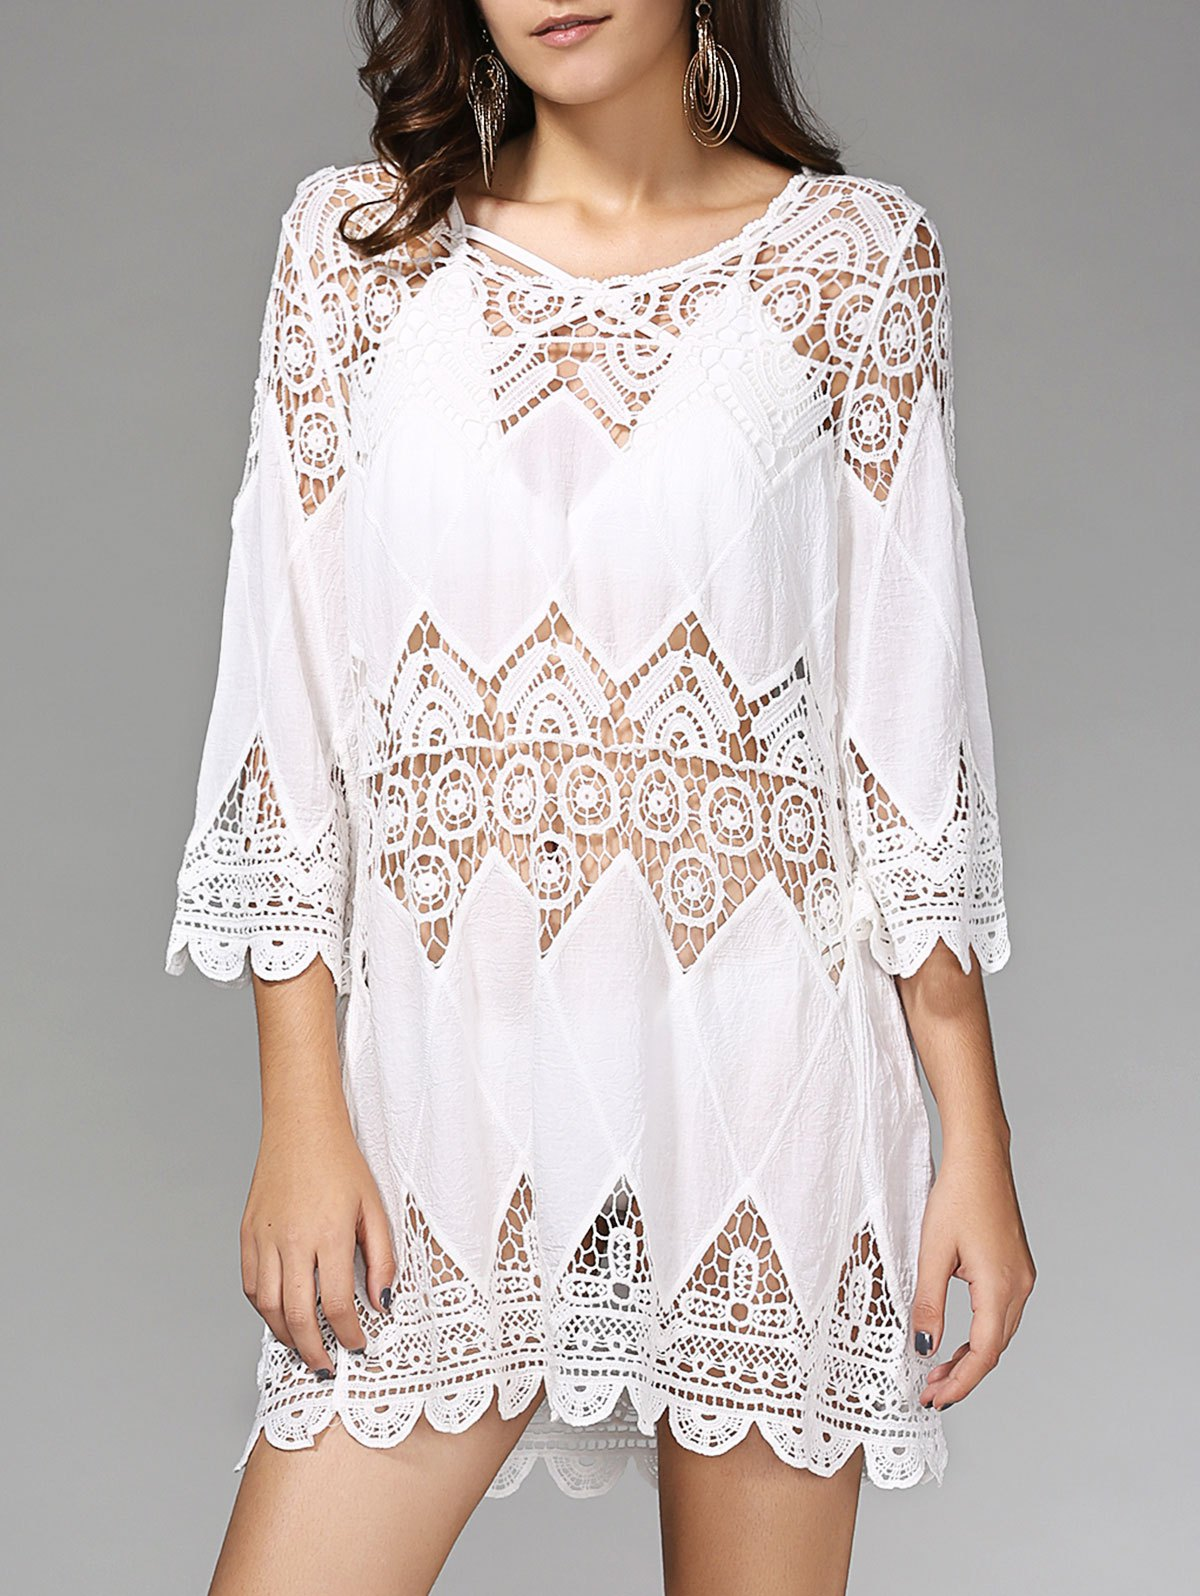 Stylish Women's 3/4 Sleeve Hollow Out Cover Up Dress - WHITE ONE SIZE(FIT SIZE XS TO M)